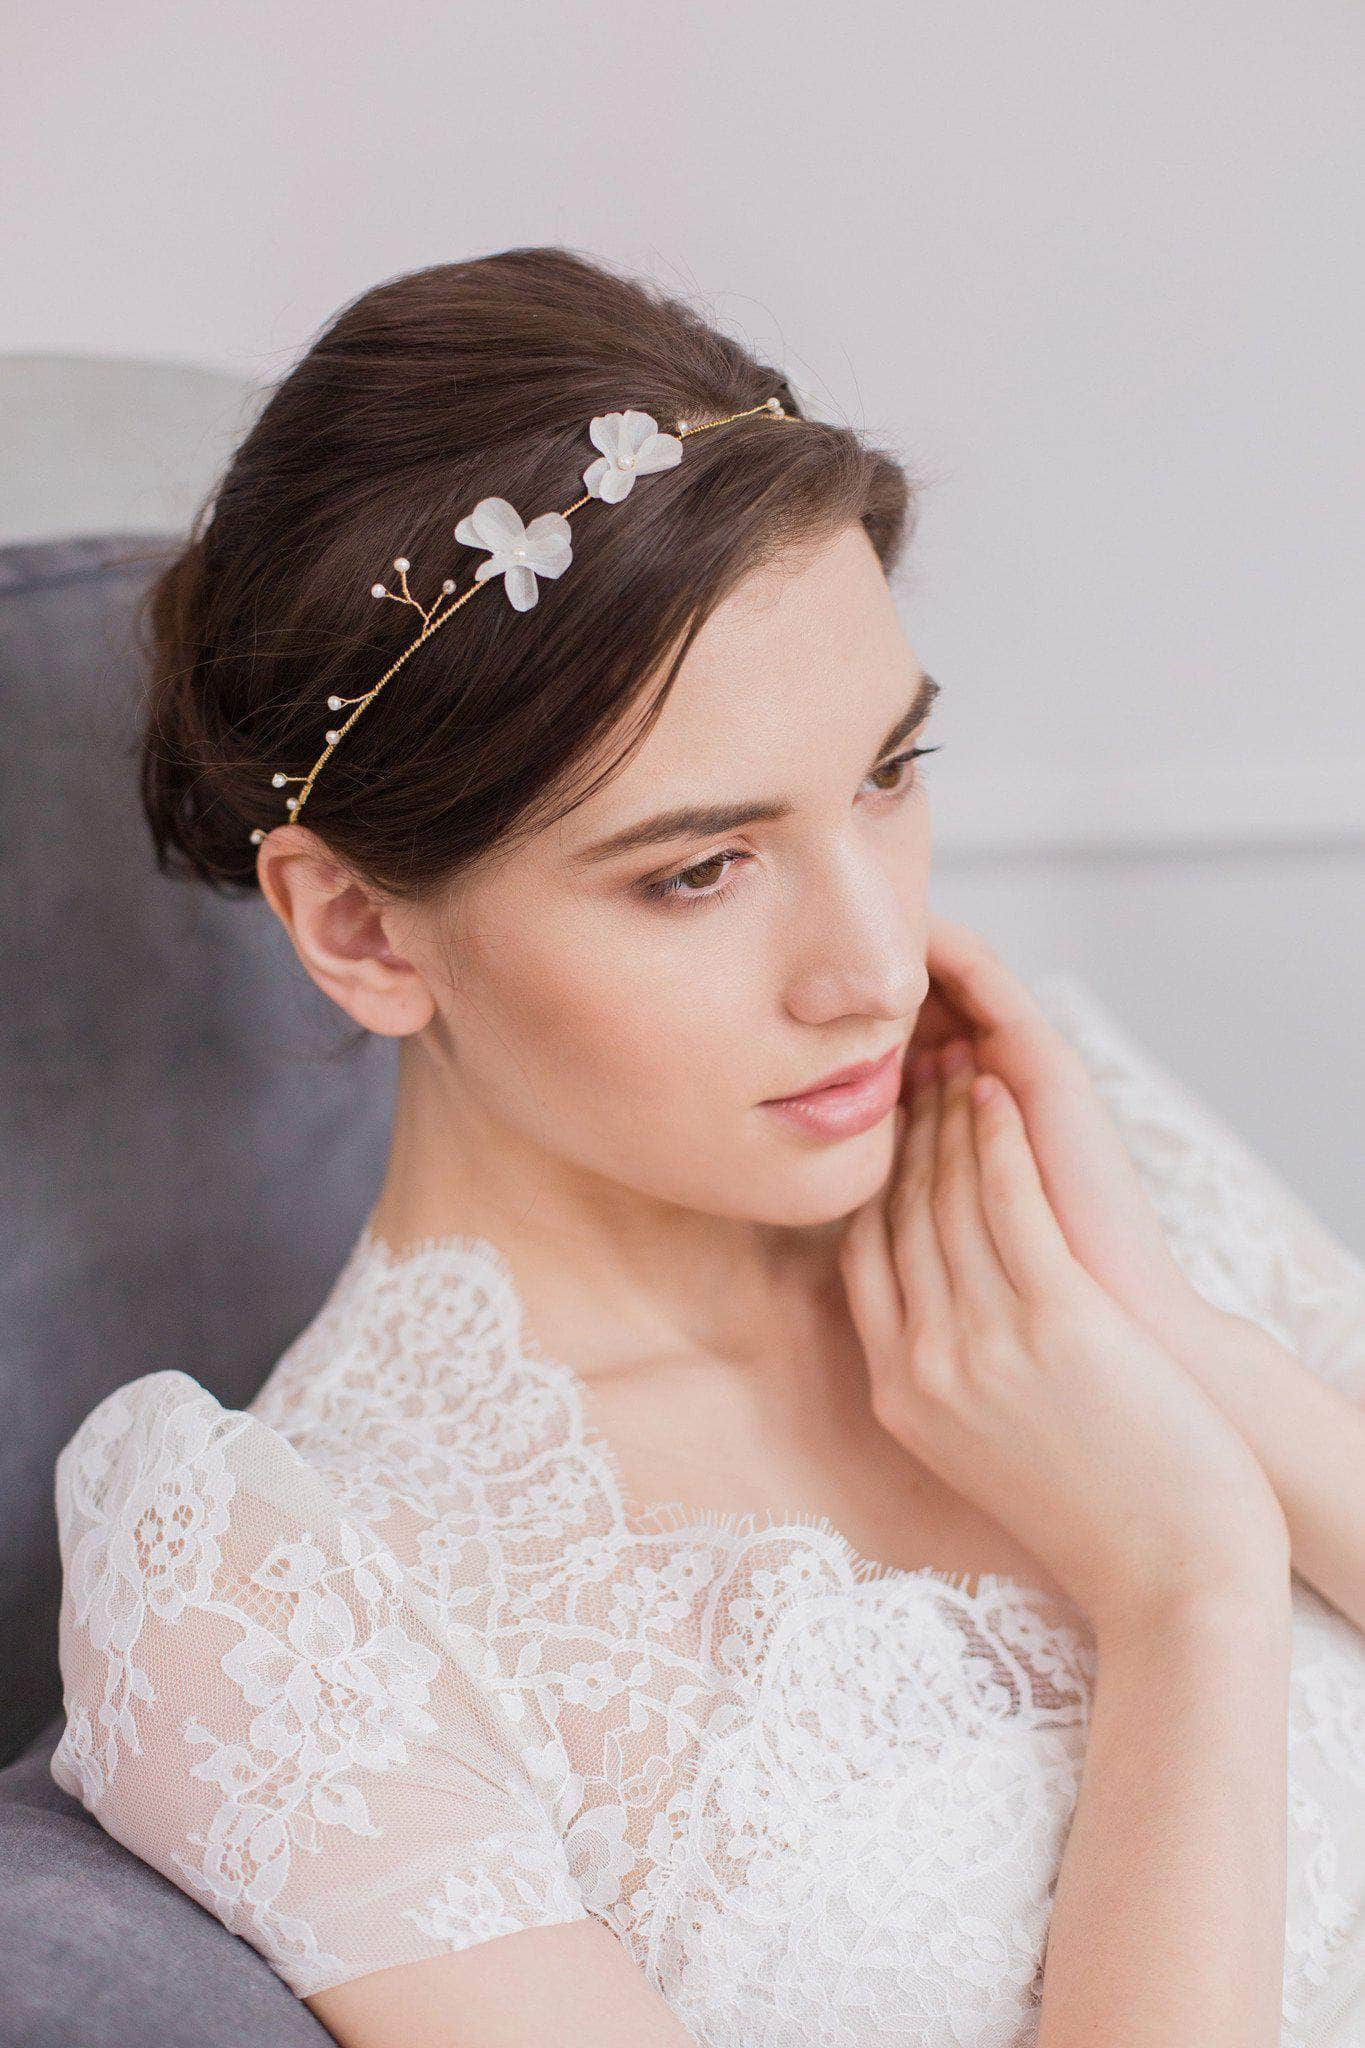 gold wedding hair vine with pearls and silk flowers - 'hareré